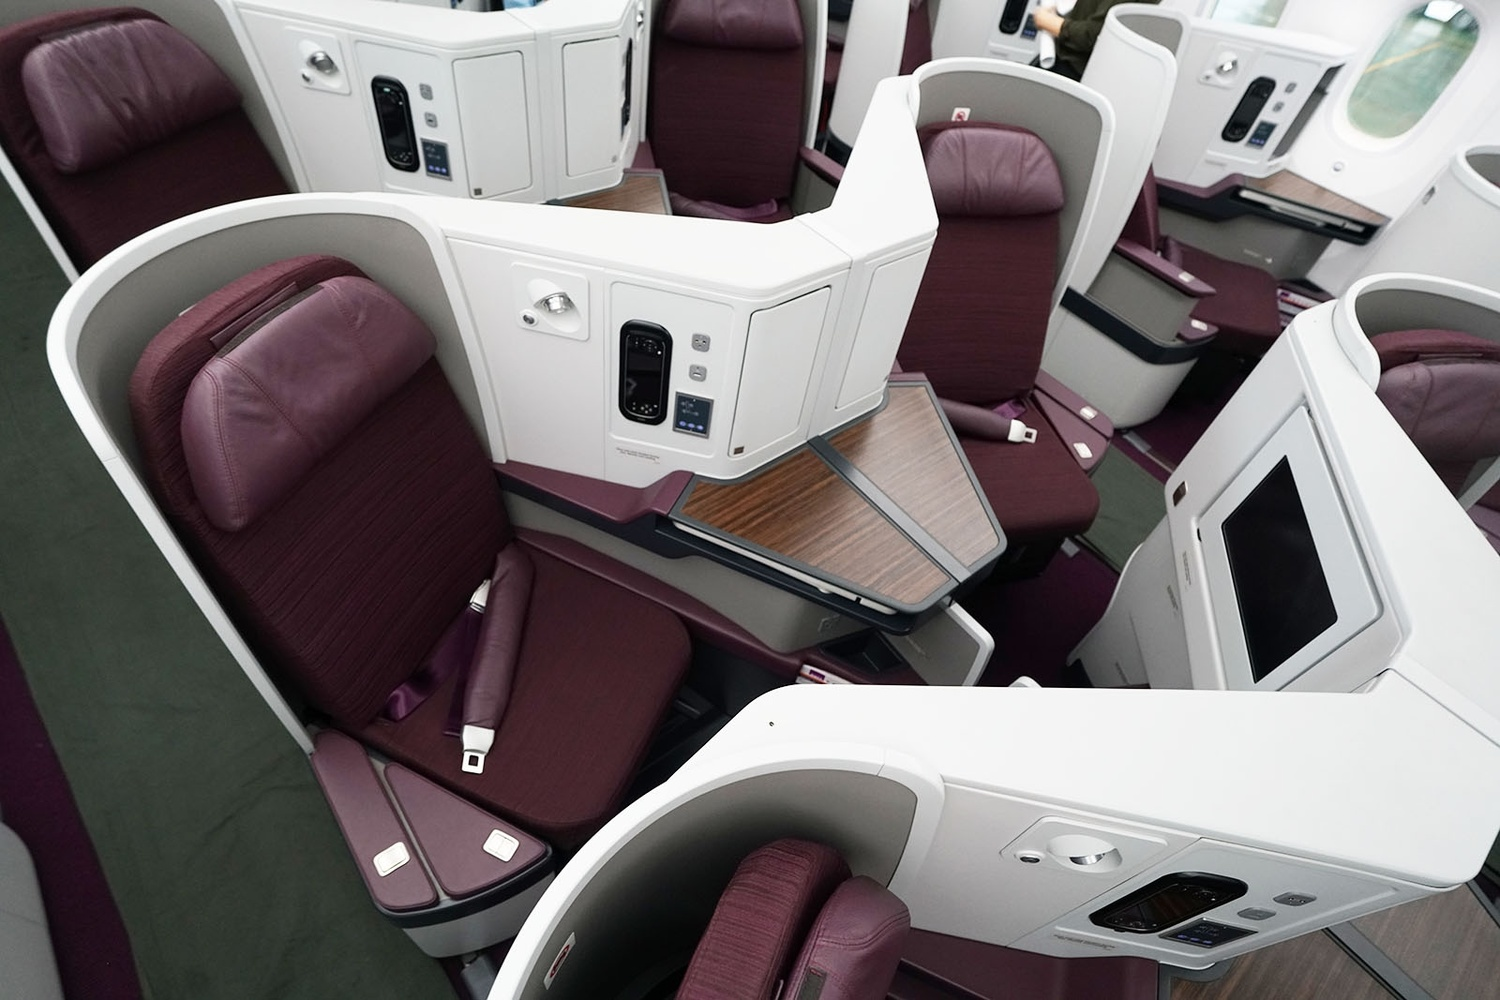 The 25 Best International Business Class Airlines in the World [2019]